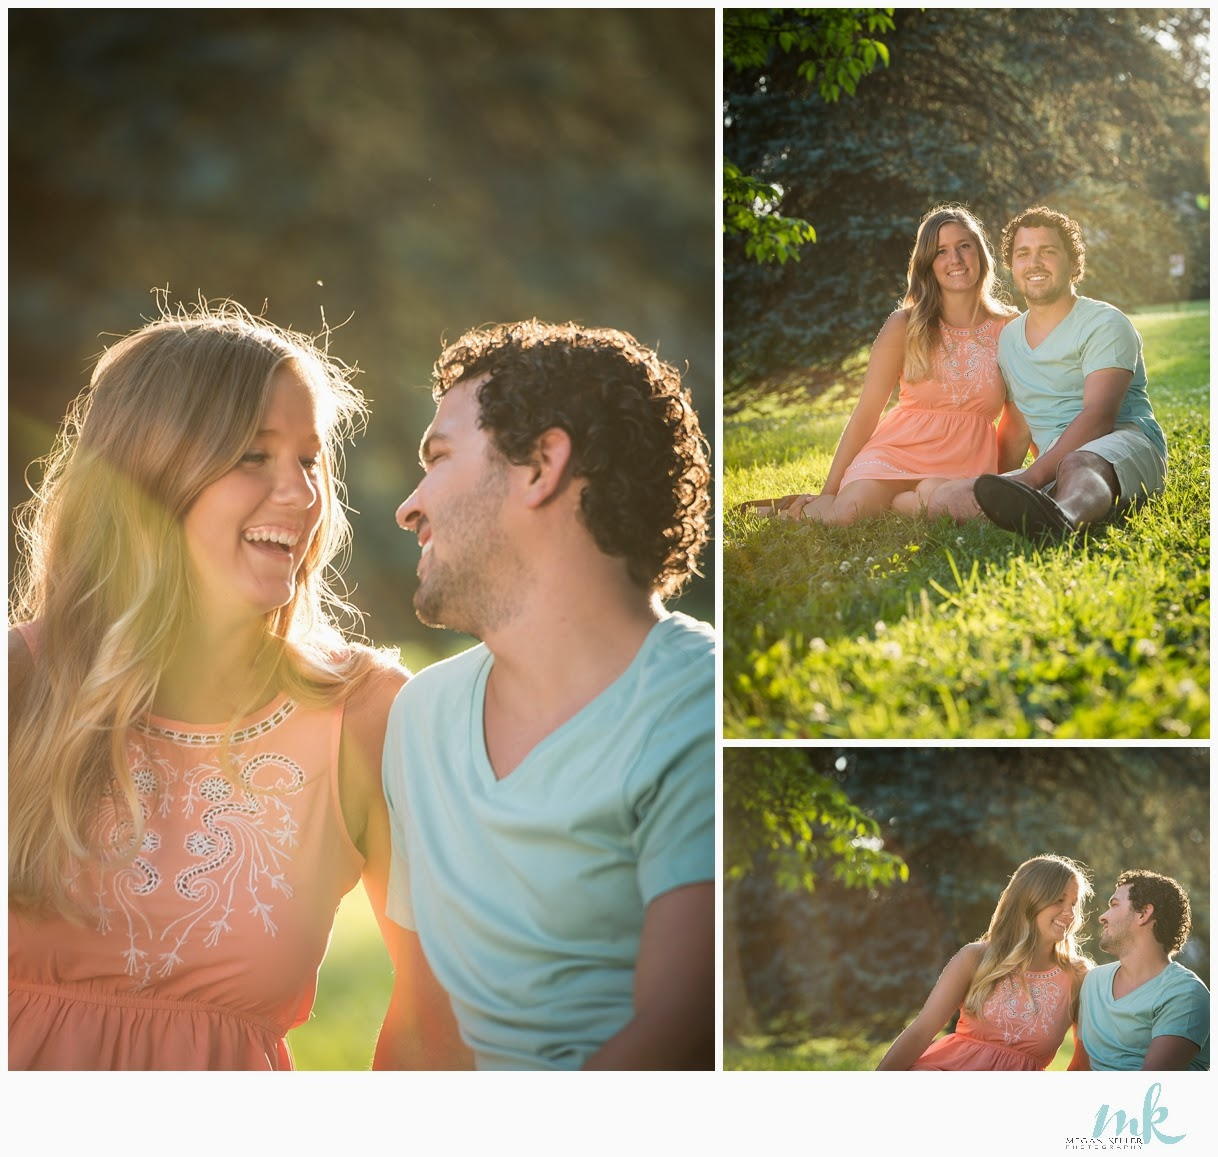 Breanna and Lucas Engagement Session Breanna and Lucas Engagement Session 2014 07 02 0003